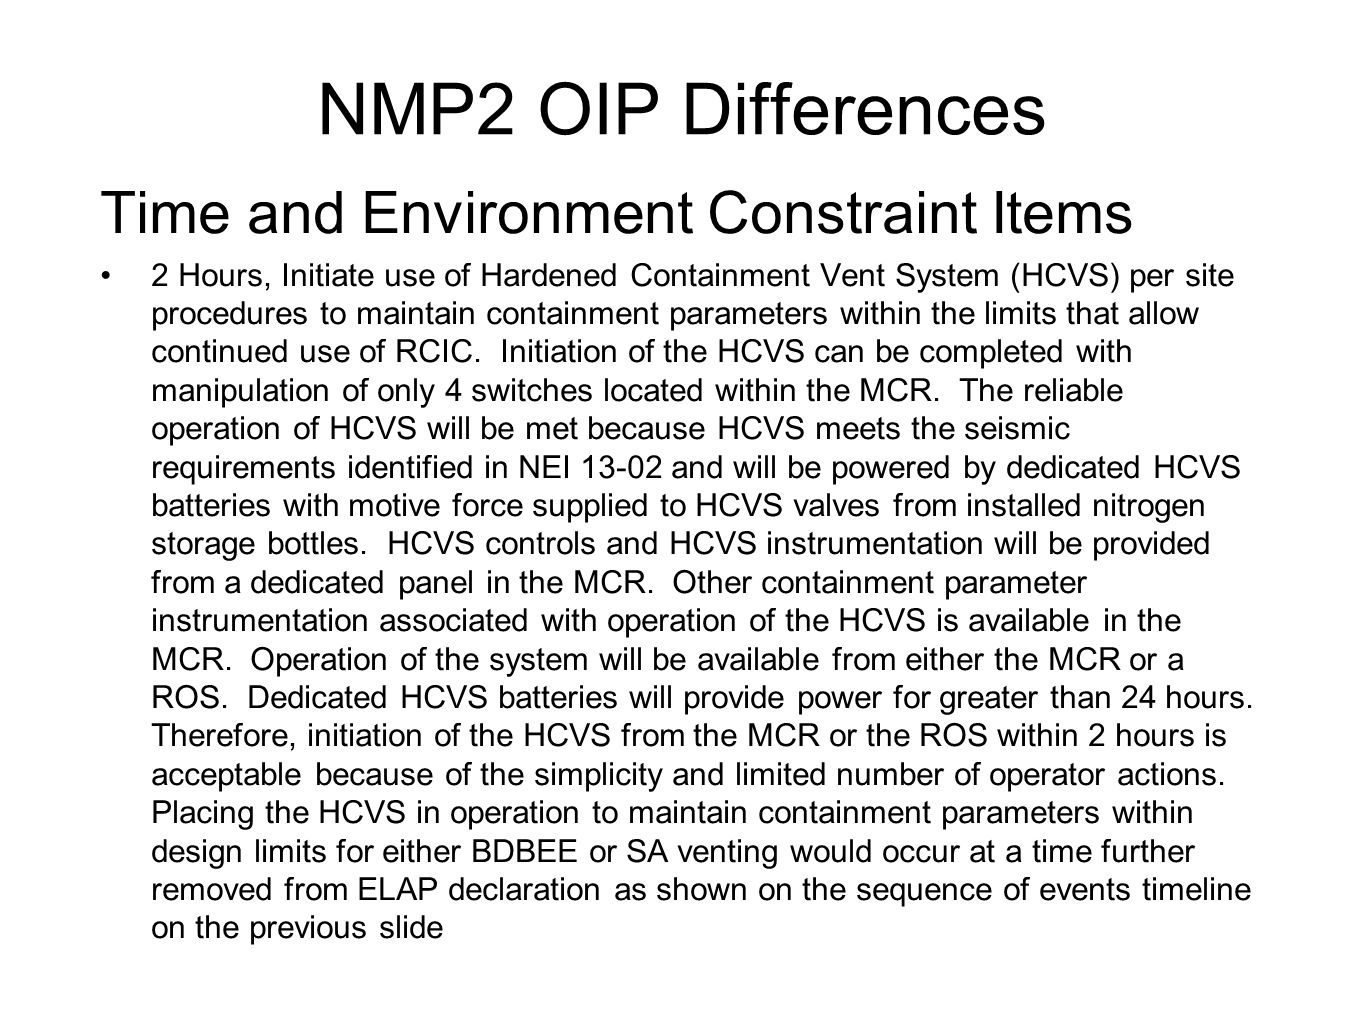 NMP2 OIP Differences Time and Environment Constraint Items